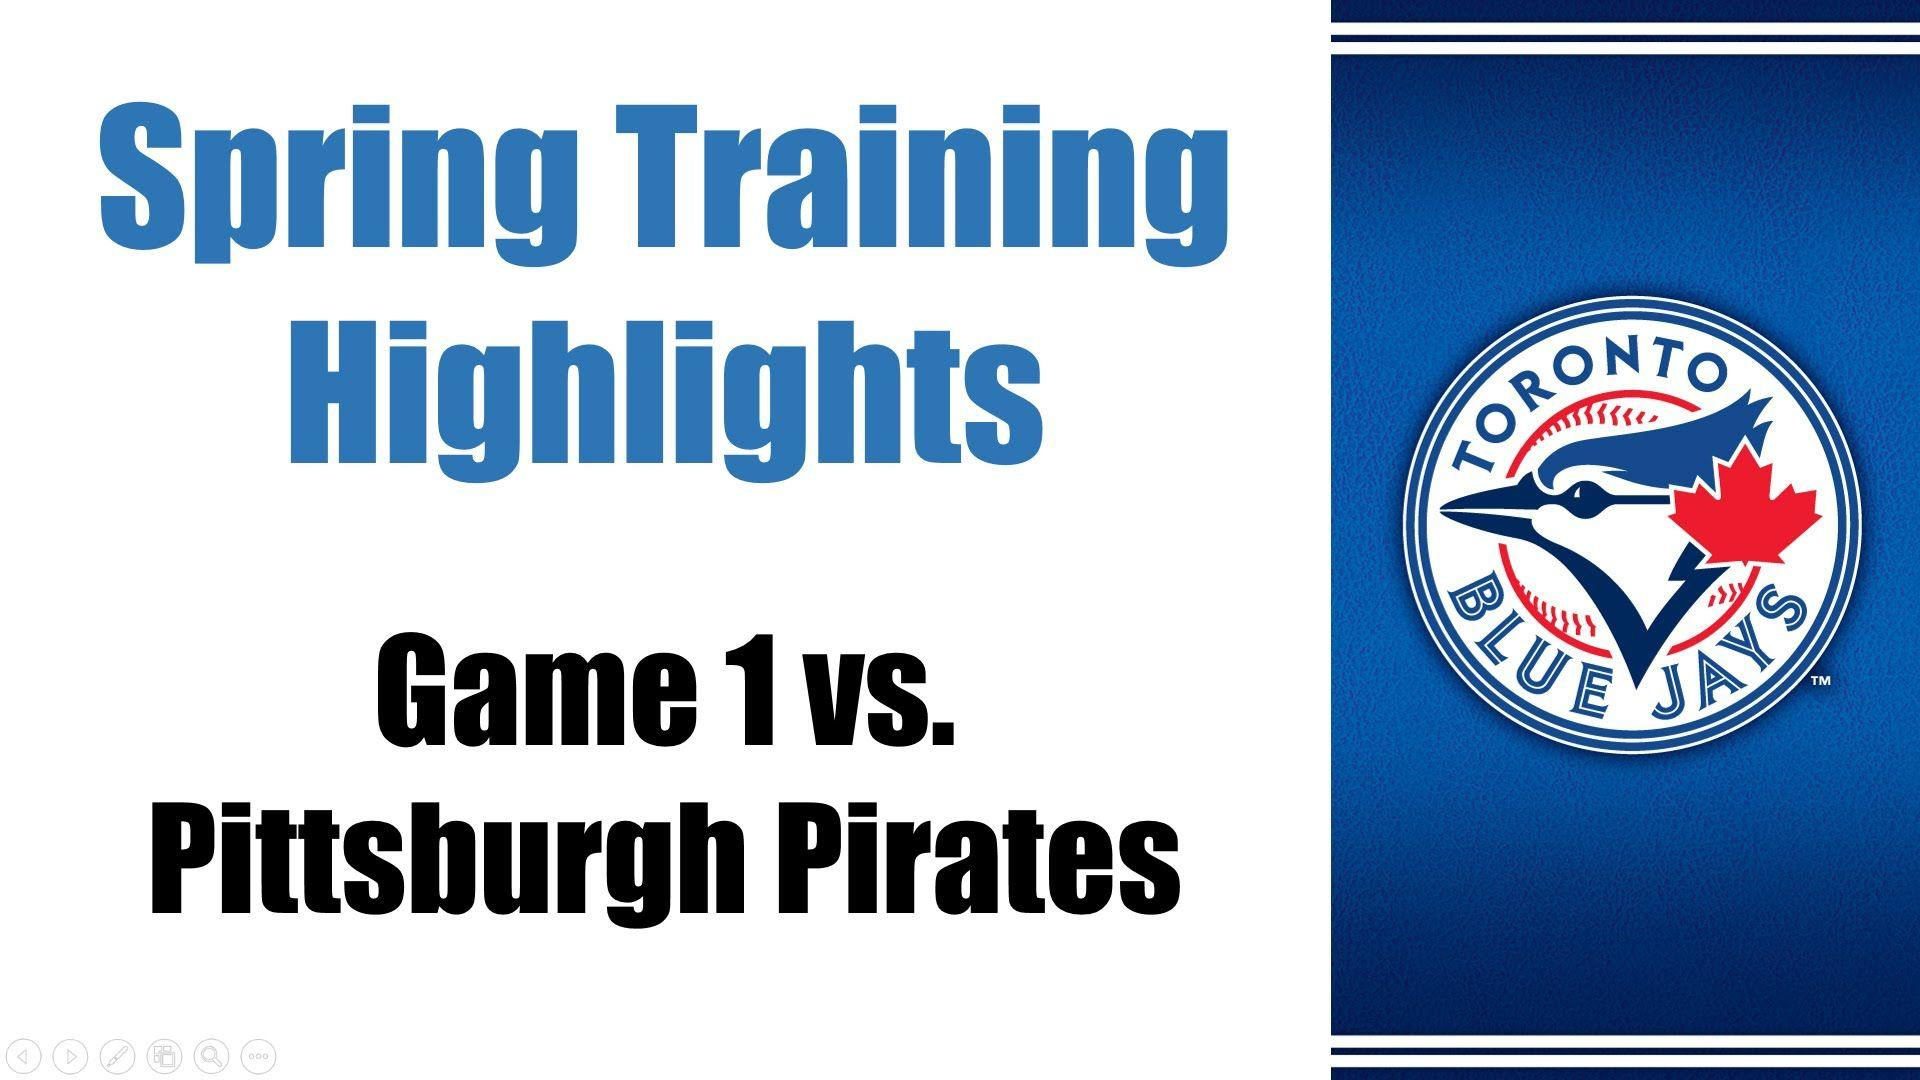 Game 1 2015 Spring Training Highlights